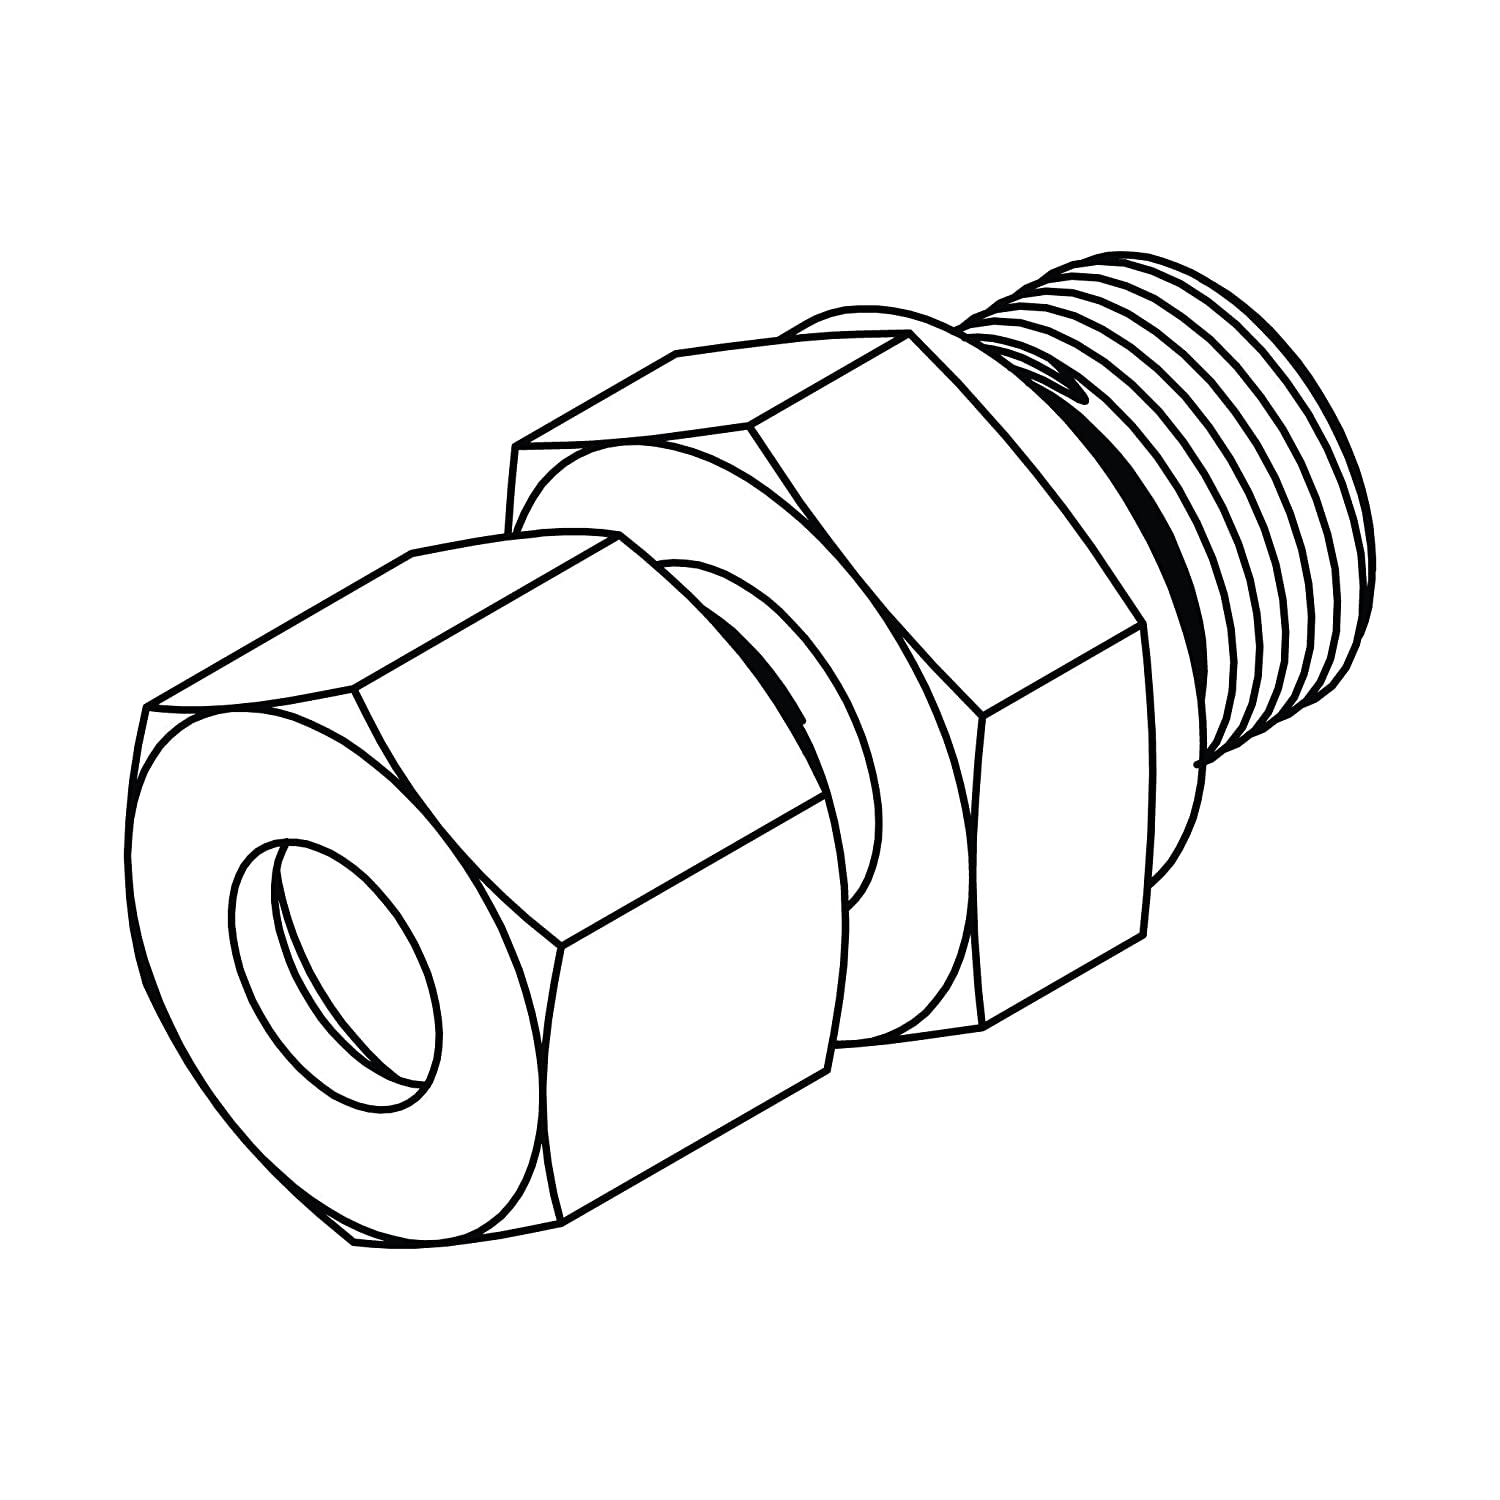 x M27 x 2.0 with Captive Seal Steel Tompkins Industries MC6053-S20-27 Metric Compression Male Stud Coupling Metric 30 x 2.0 ,S20